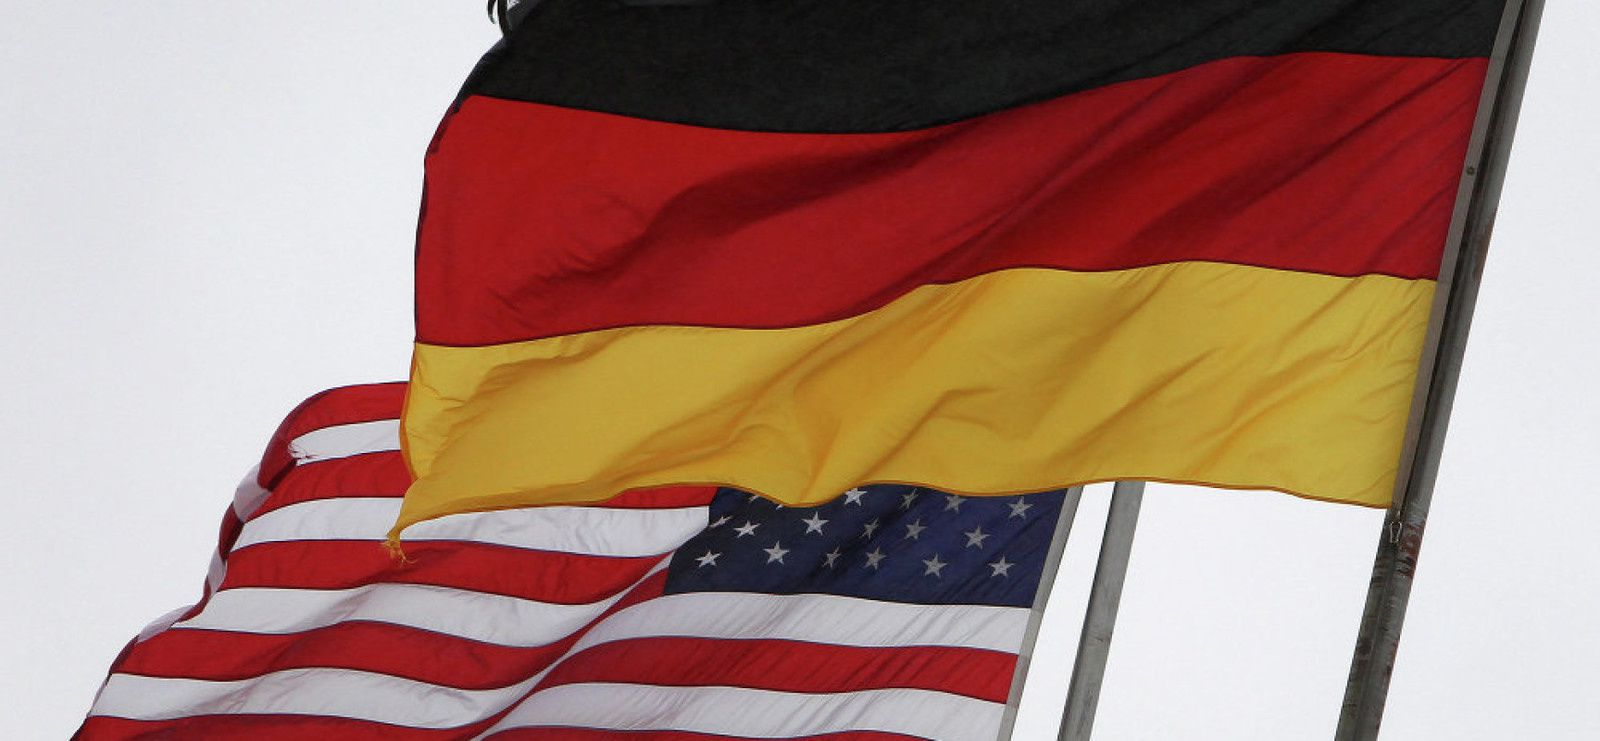 Washington et Berlin se dirigent vers la collision (Sputniknews)